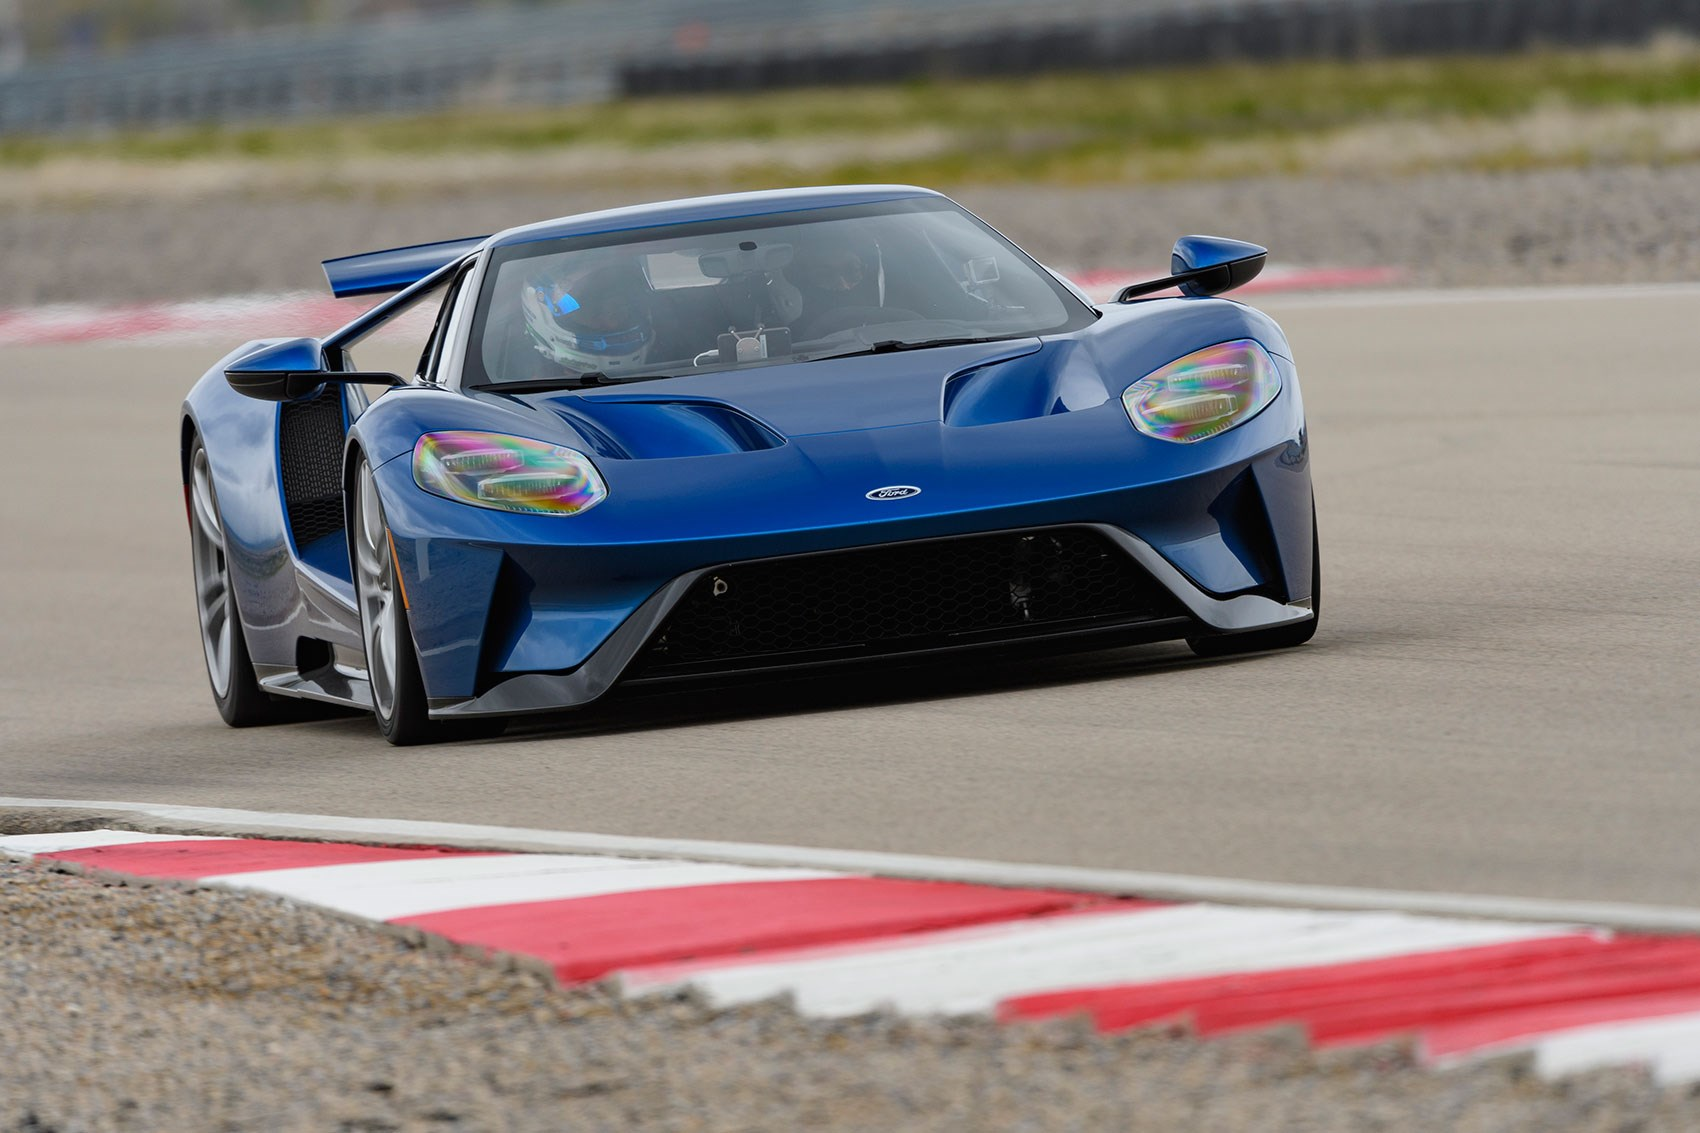 Ford GT: the new 2017 supercar